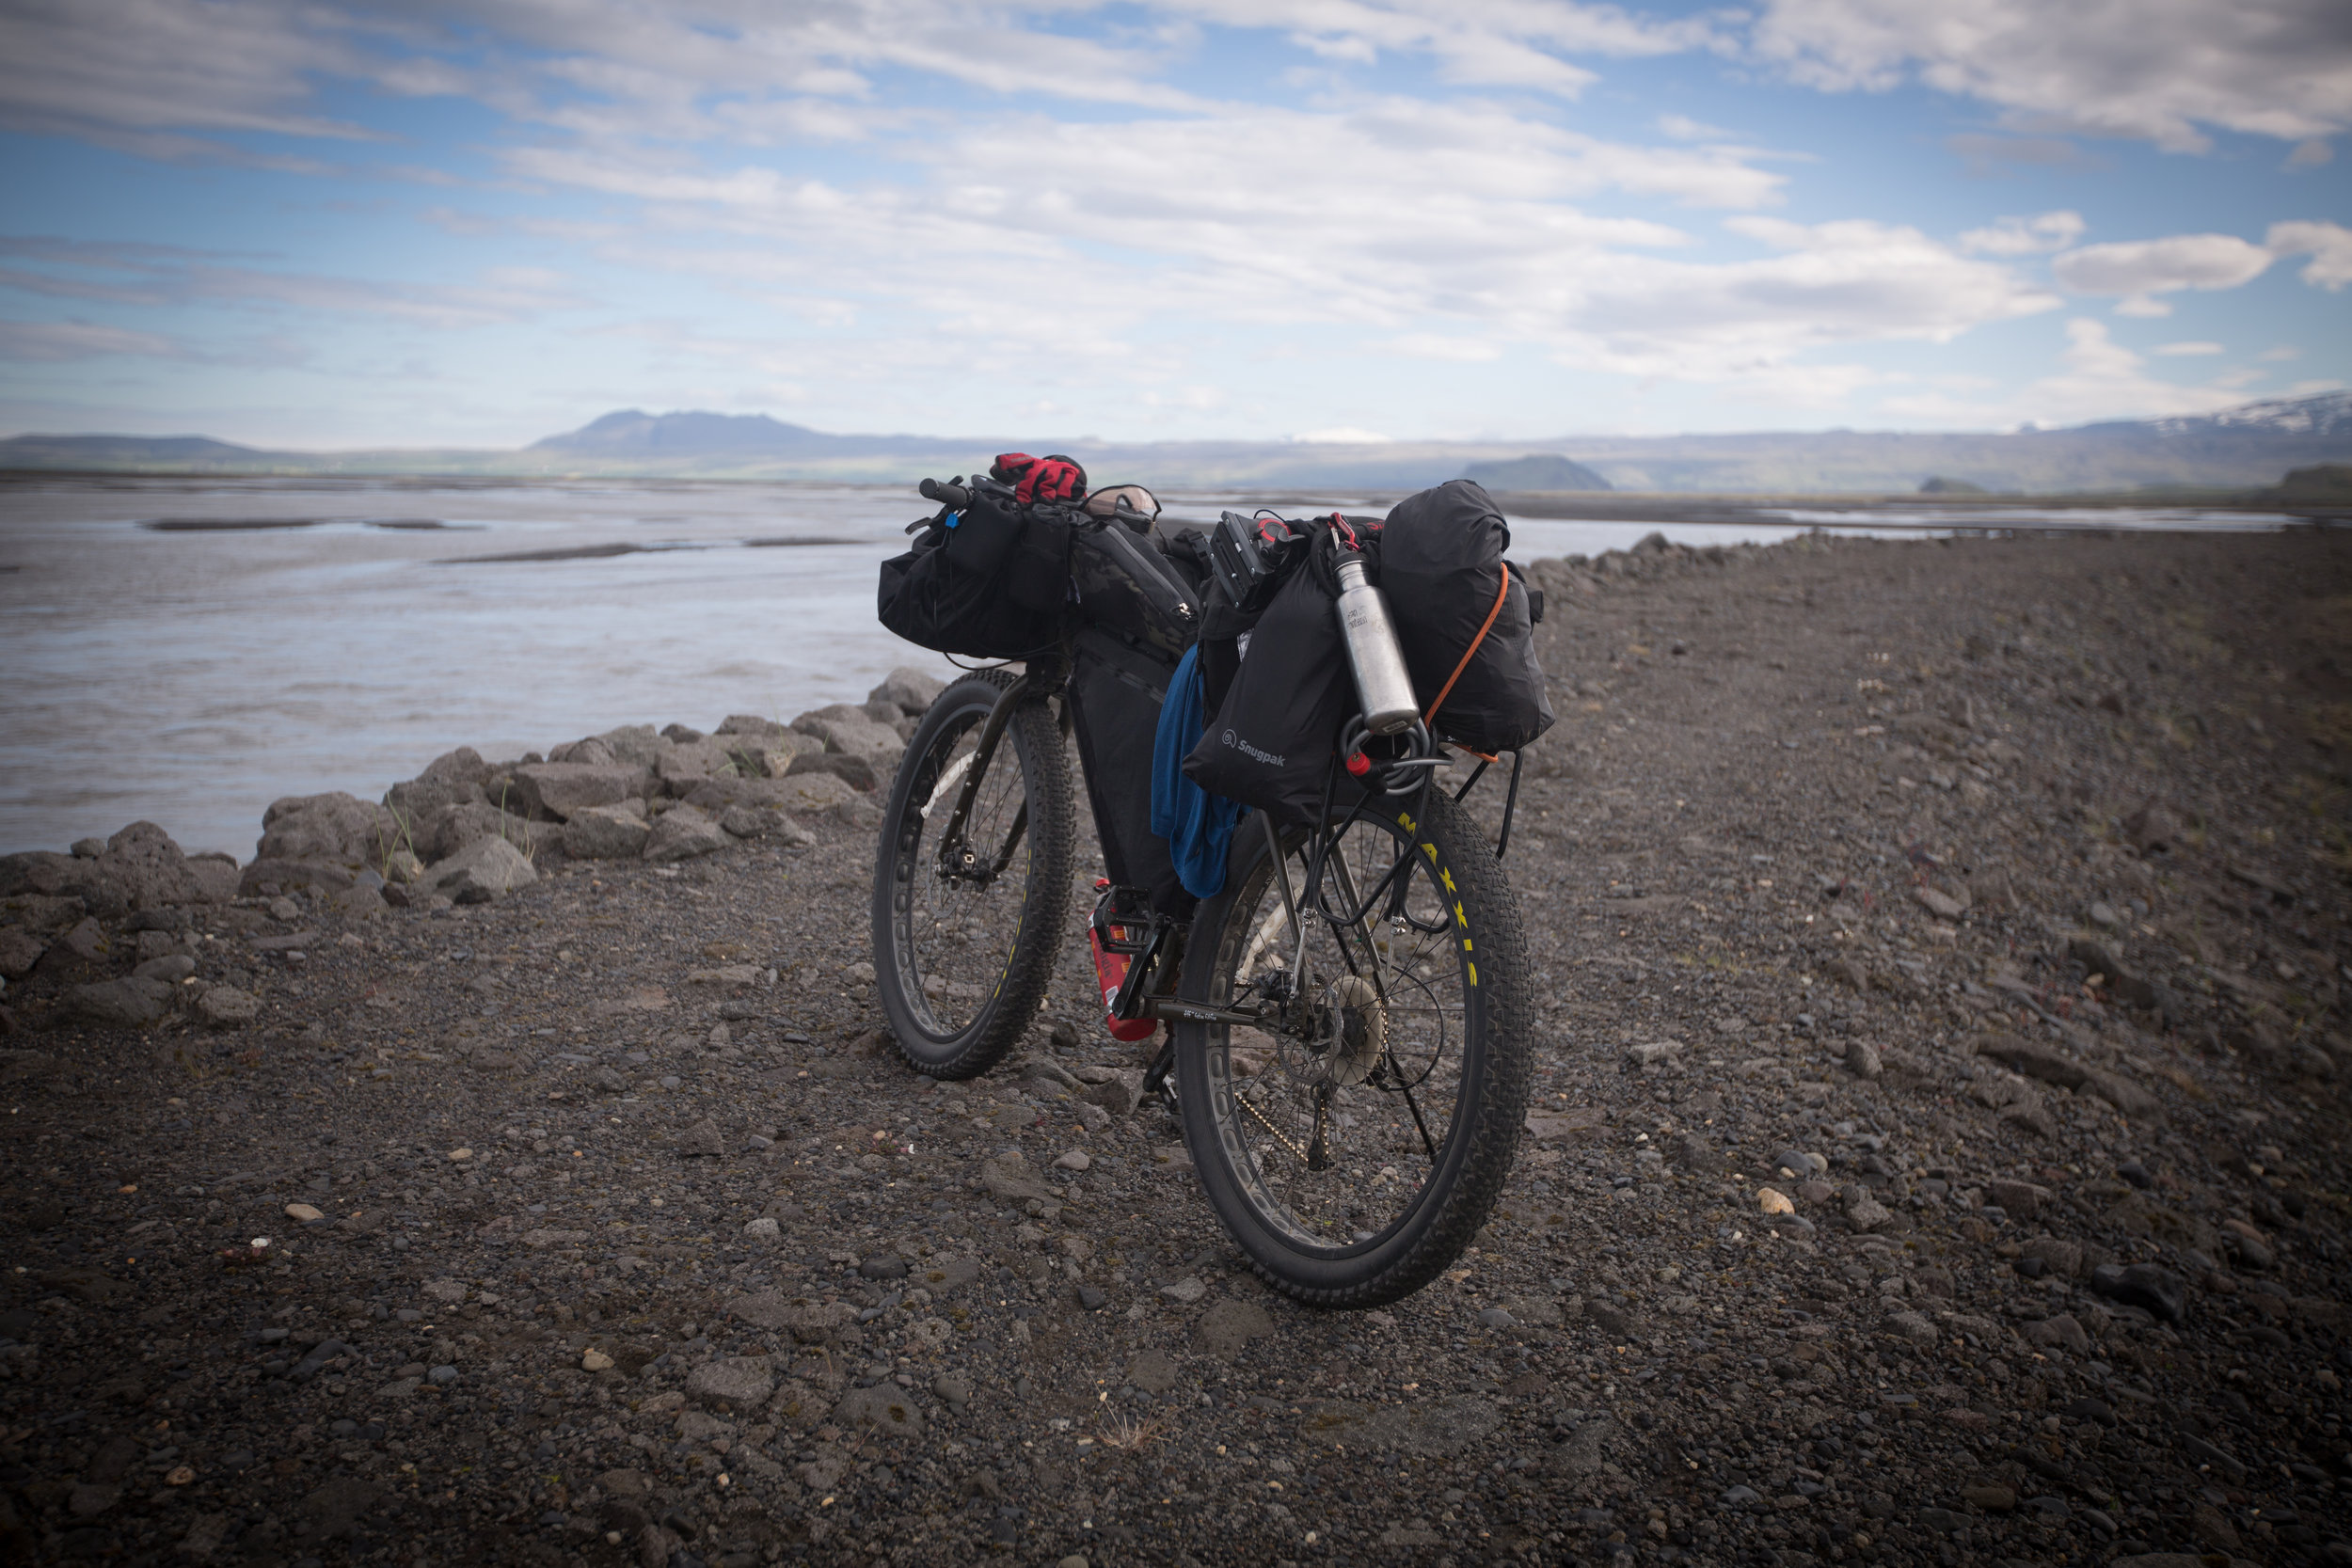 bikepacking, bicycle touring, bikepacking blog, cycling blog, travel blog, explore, jack mac, bicycle touring apocalypse, adventure cycling, cycling, cycling blog, cycle touring, jack mac blogger, pro rider, van life, surly, surly bikes, bikepacking bags, gear reviews,